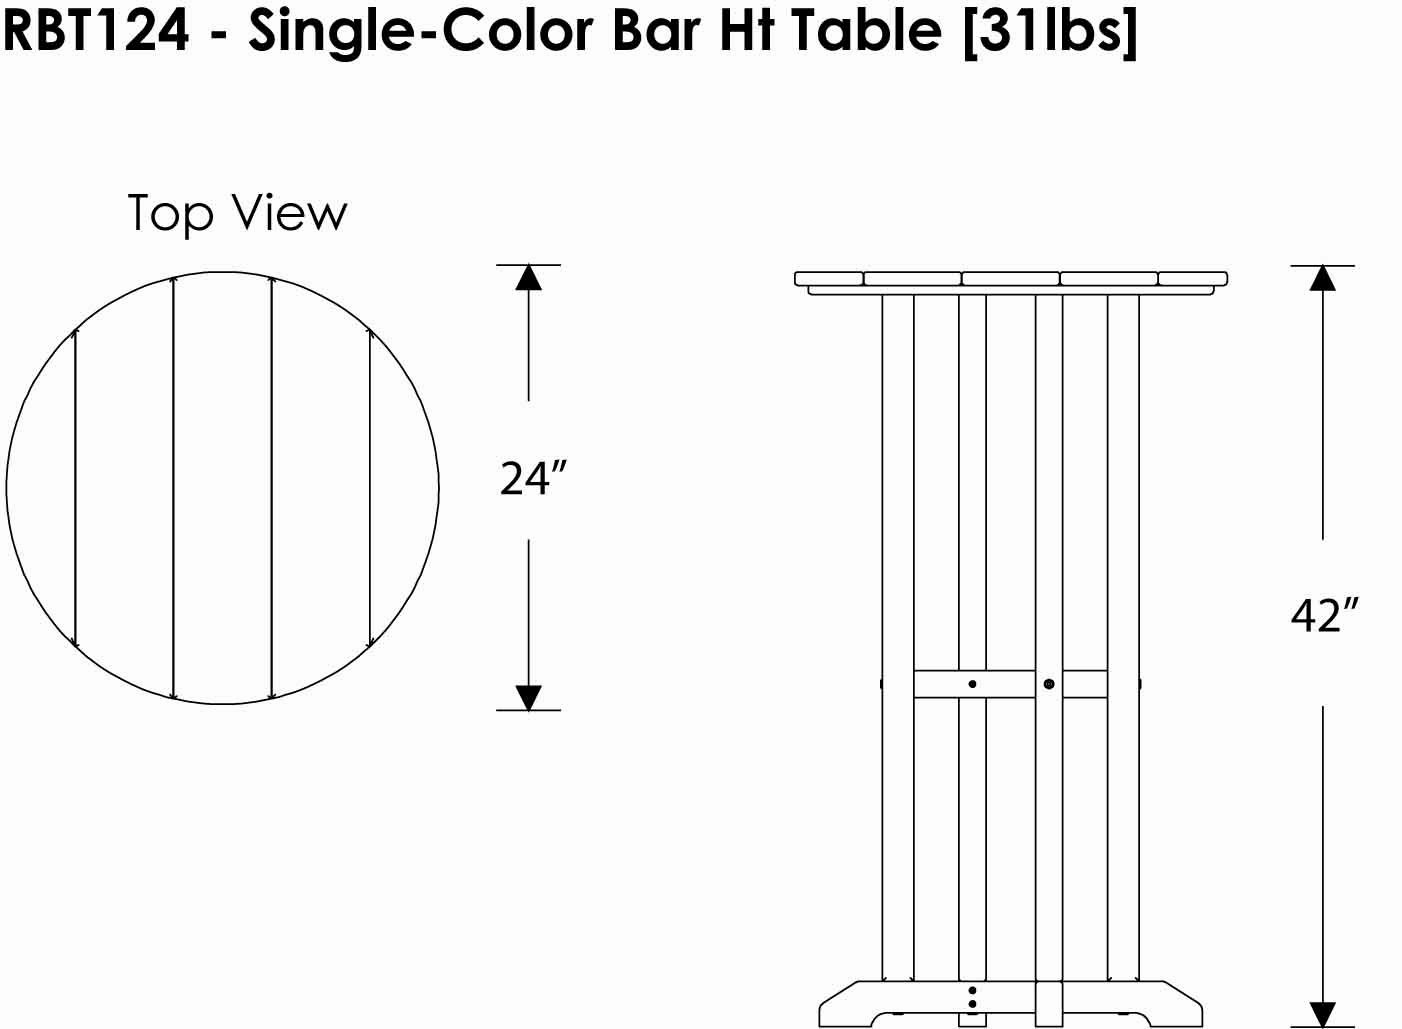 Bar table dimensions - Amazon Com Polywood Rbt124wh Traditional 24 Round Bar Table White Patio Side Tables Patio Lawn Garden